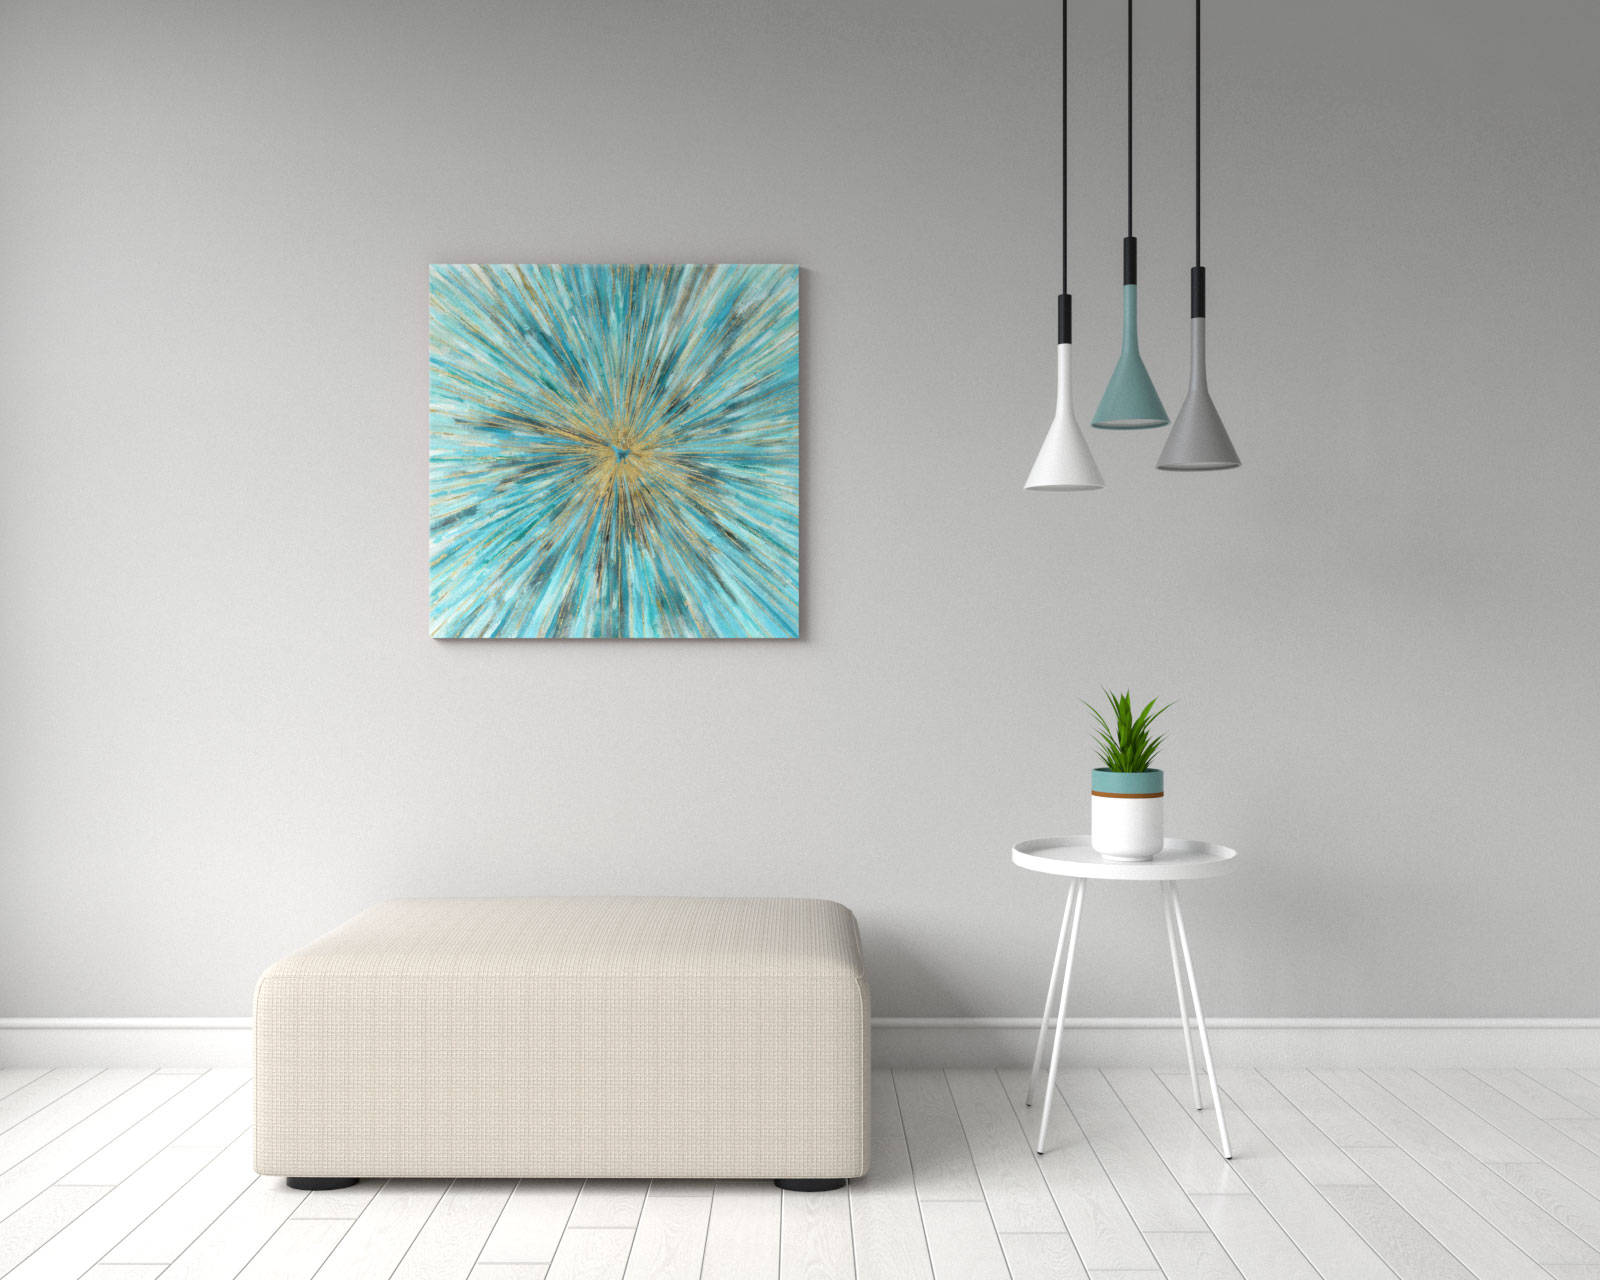 Contemporary teal abstract canvas wall art